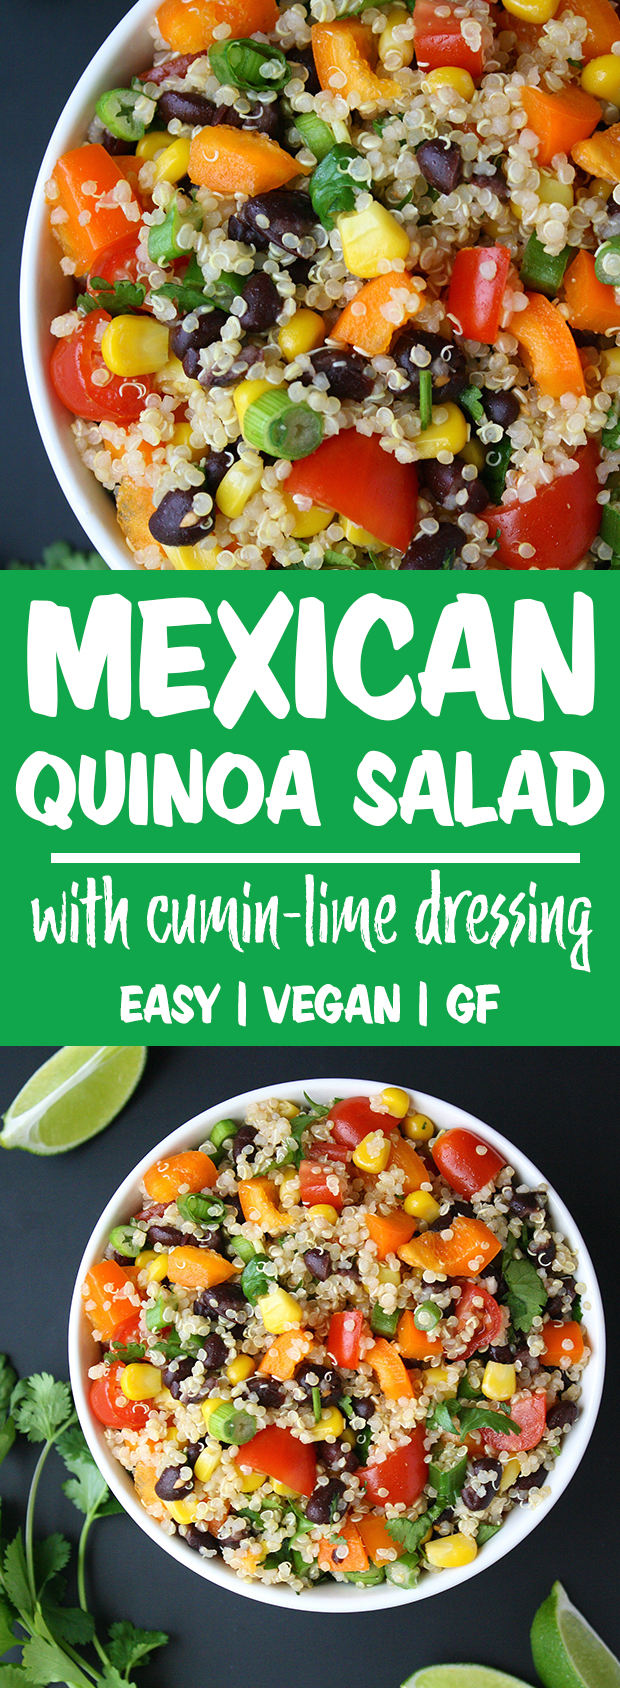 bowls of Mexican Quinoa Salad with cumin dressing